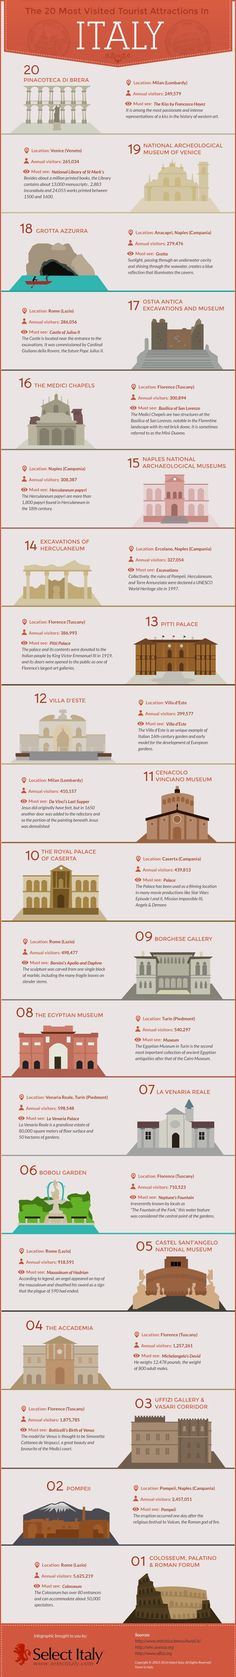 The 20 Most Visited Tourist Attractions in Italy [INFOGRAPHIC] #italy #infographic #travel. If you're a user experience professional, listen to The UX Blog Podcast on iTunes.